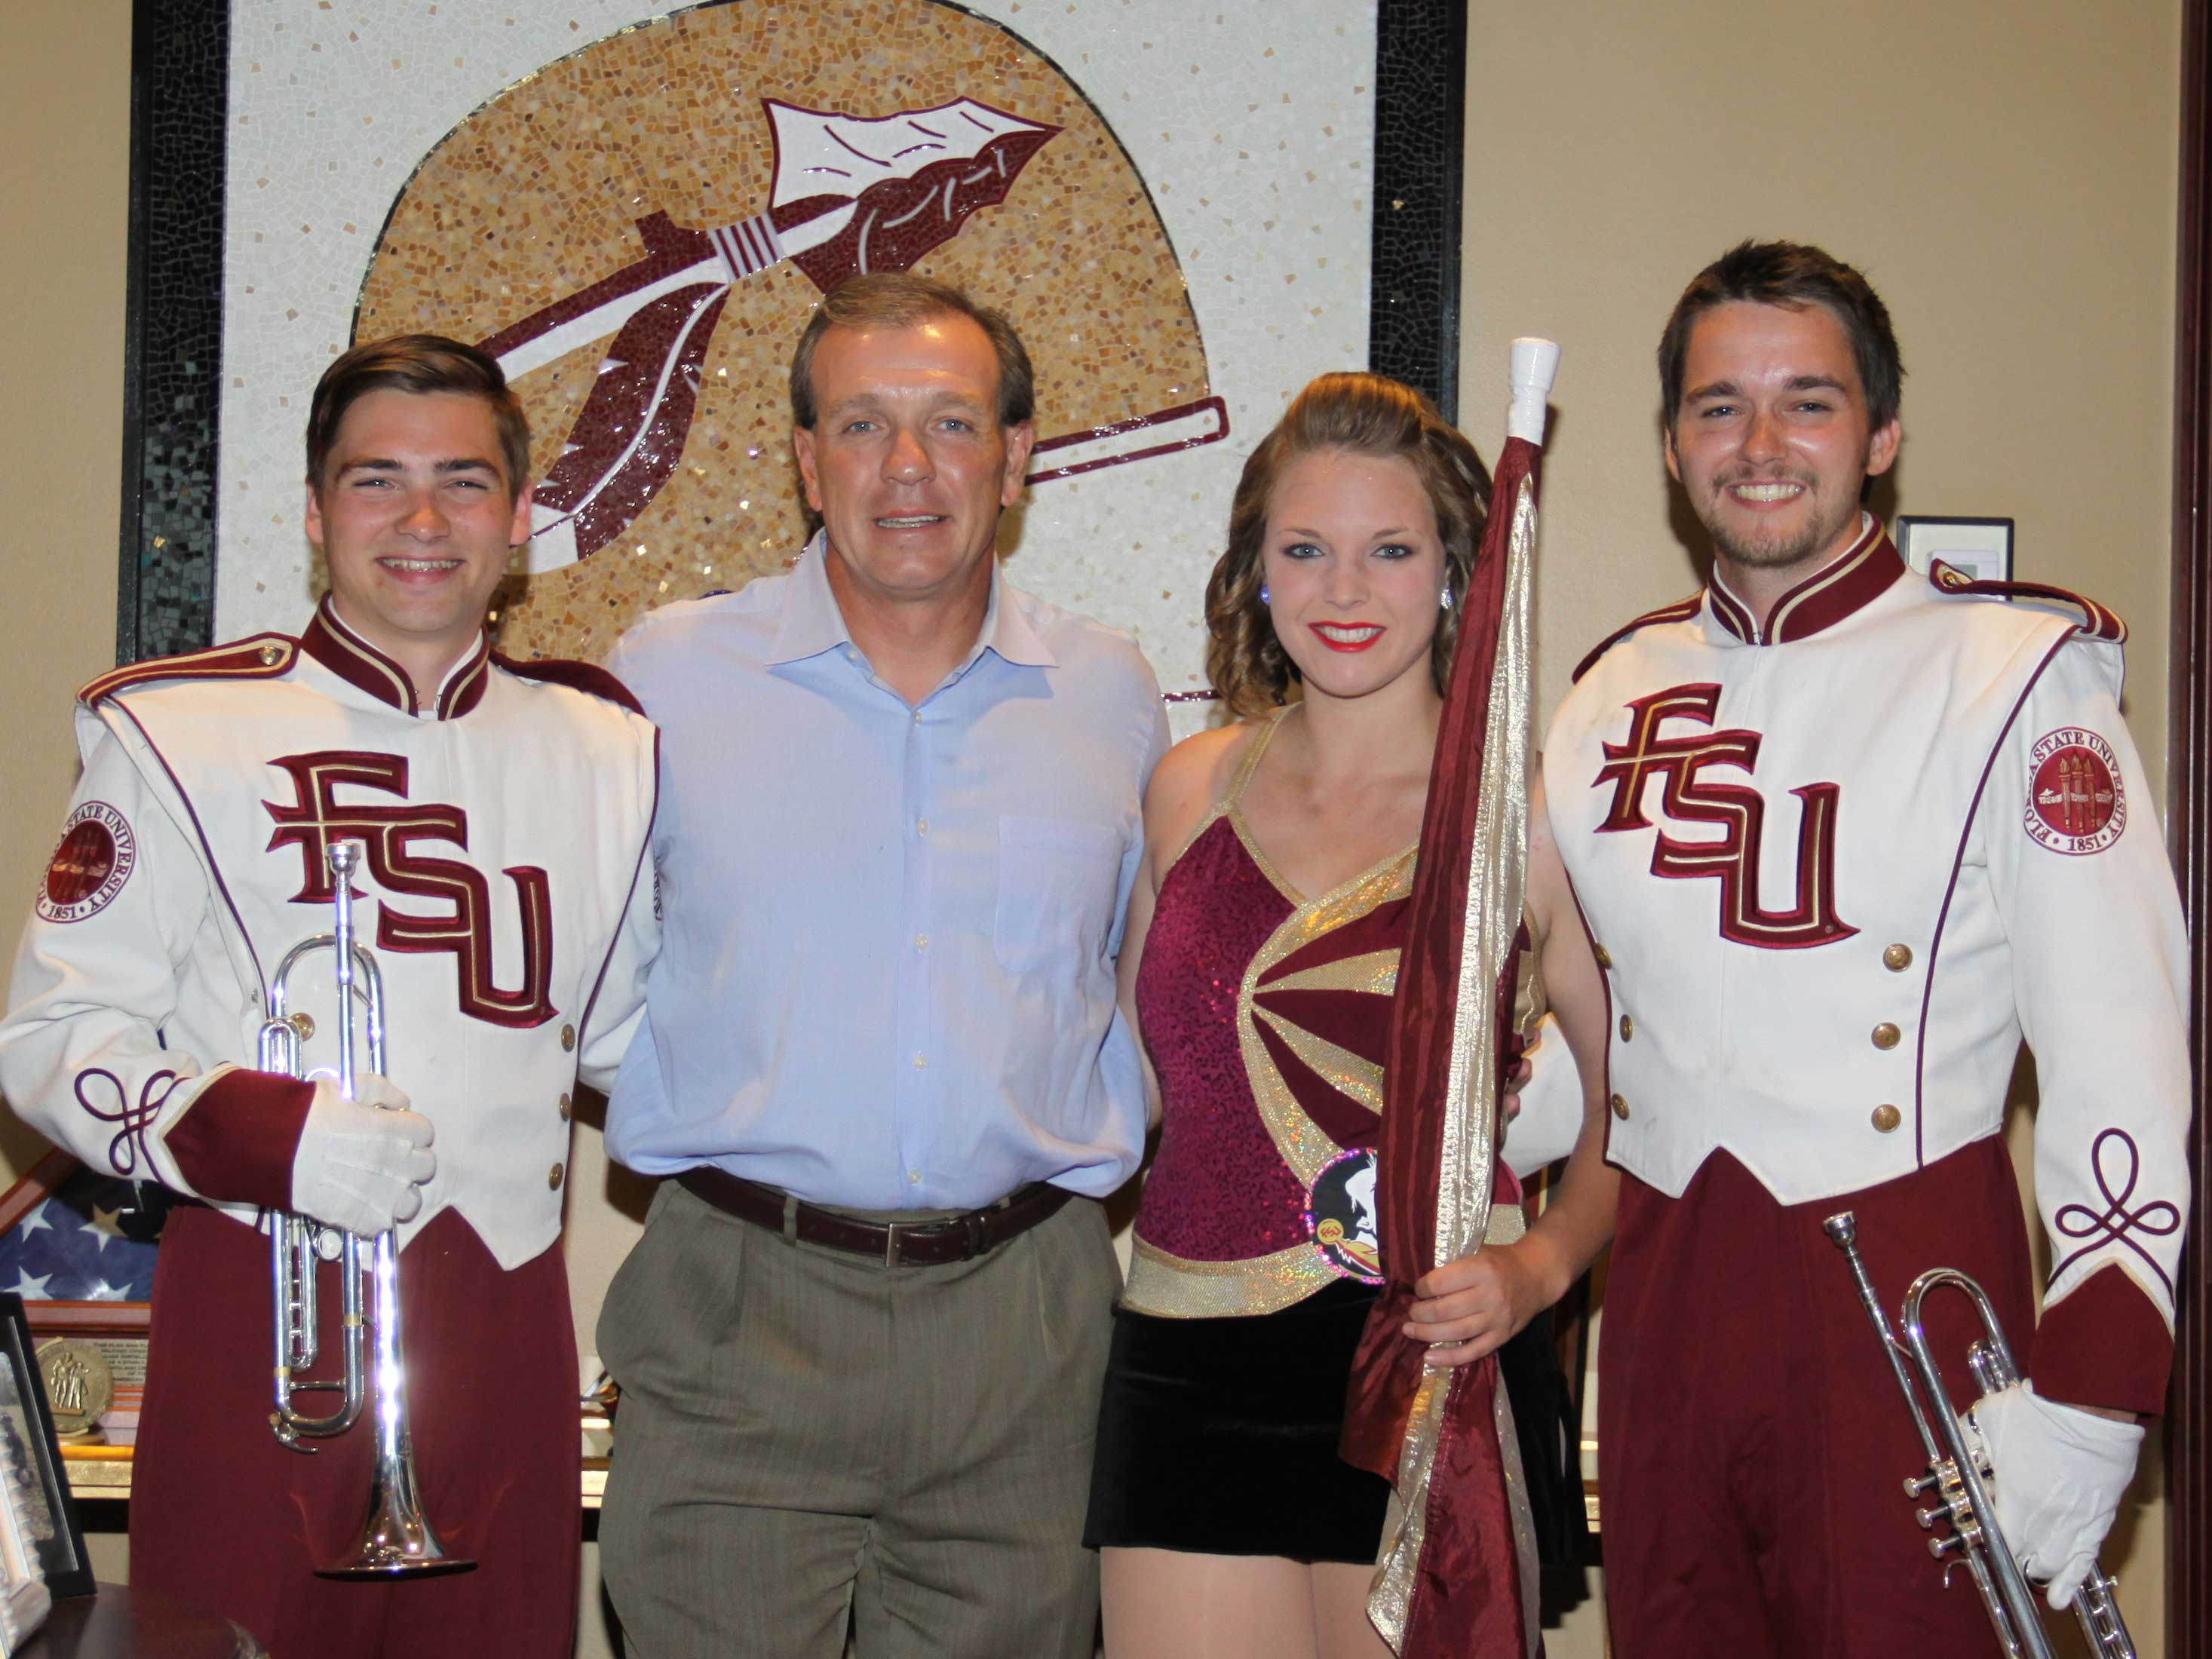 FSU Marching Chiefs Honor Coach Fisher's Fight